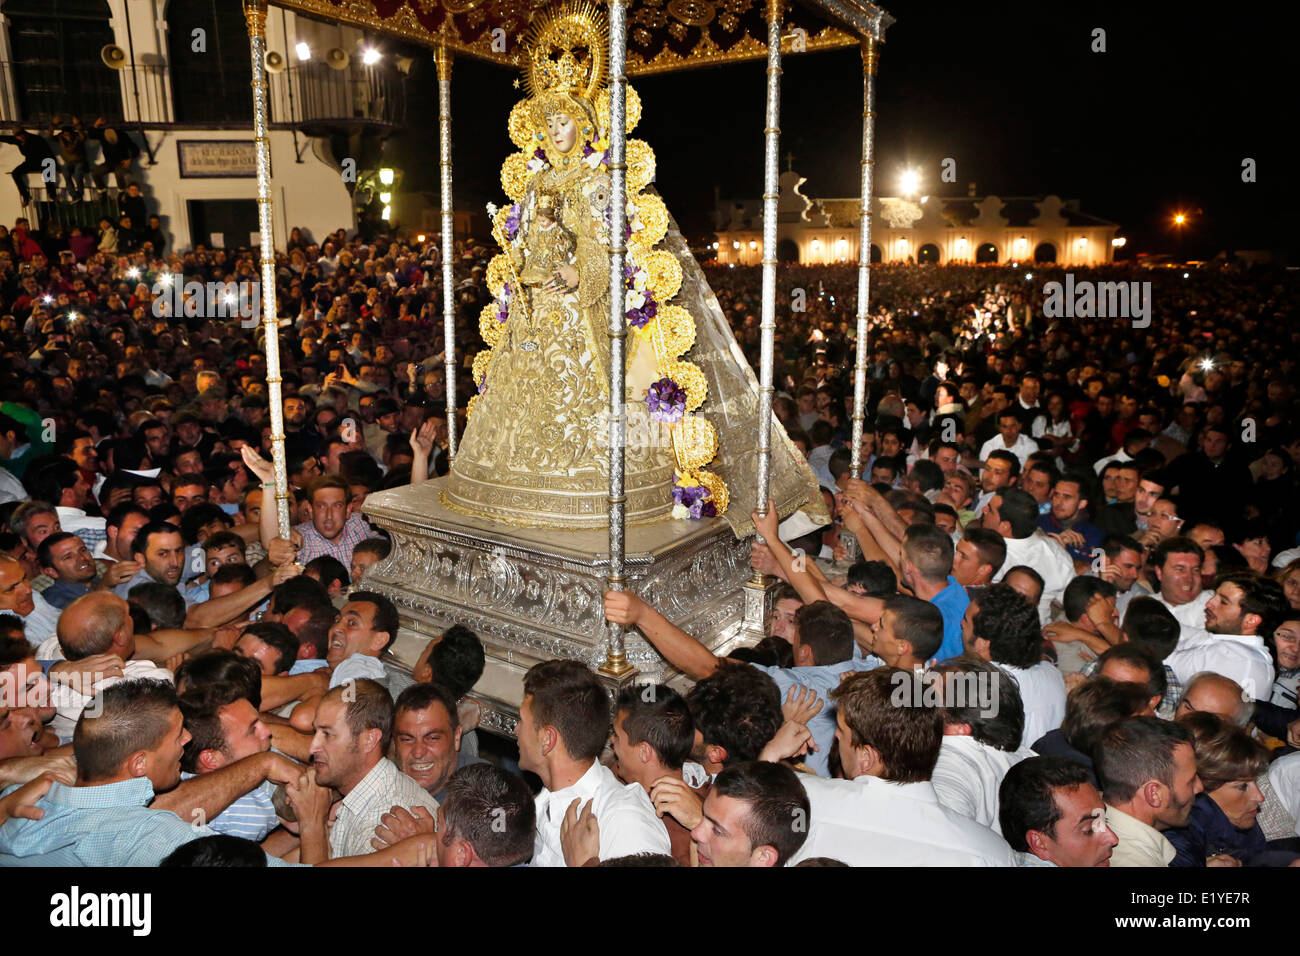 Thousands gather to touch the Virgin of El Rocío during the Romeria processionin Rocio in the province of Huelva, Stock Photo